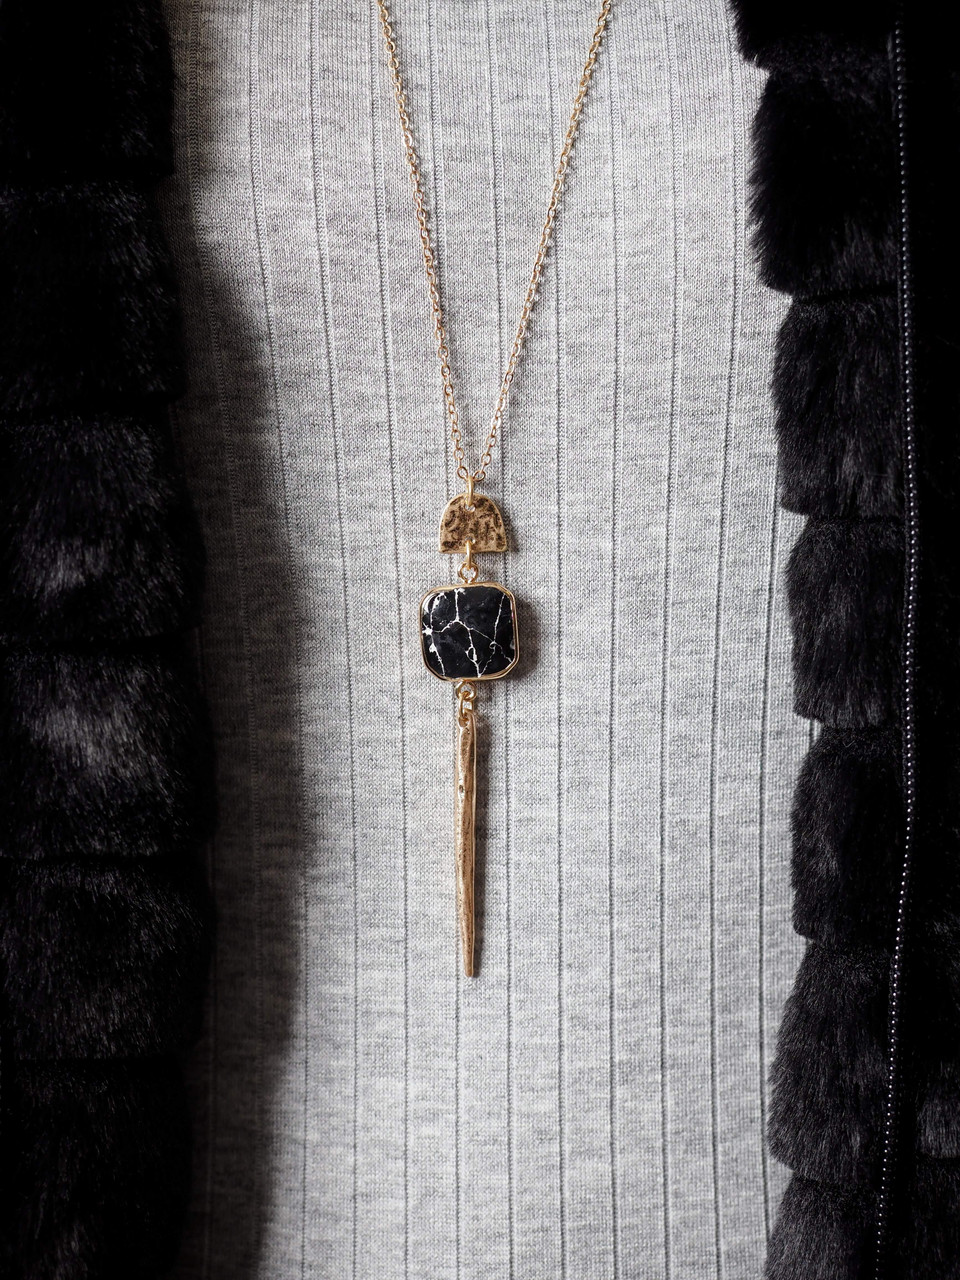 Gold Metal and Black Marbled square stone pendant necklace, Nickle and lead free.